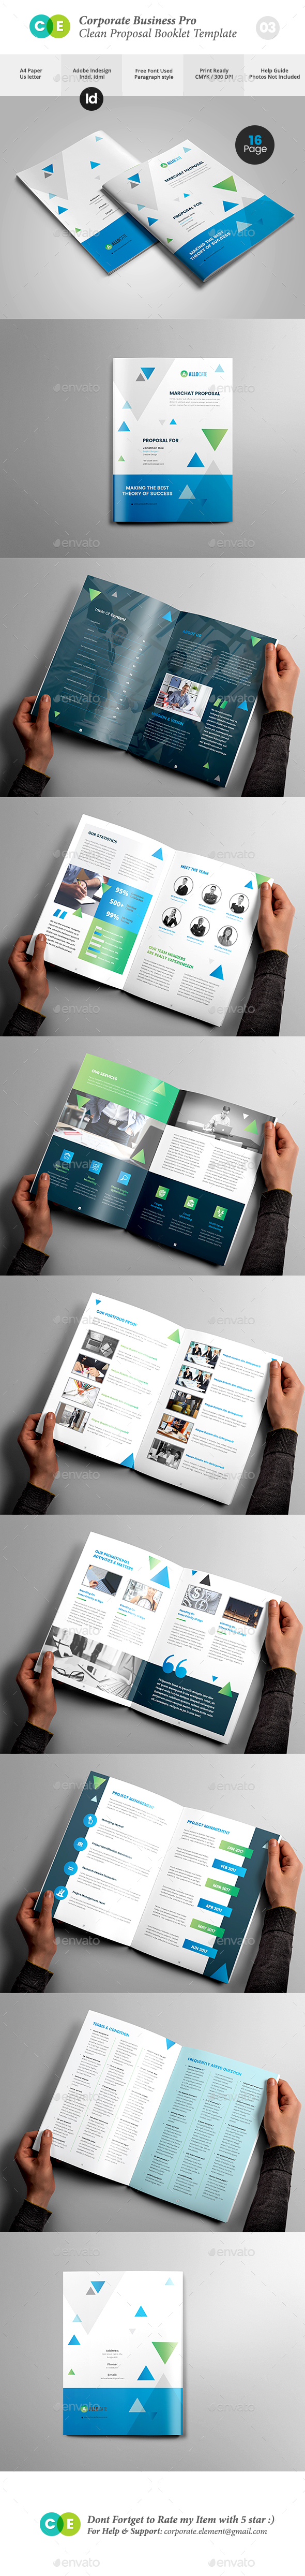 GraphicRiver Corporate Business Pro Clean Proposal Template V03 20254471